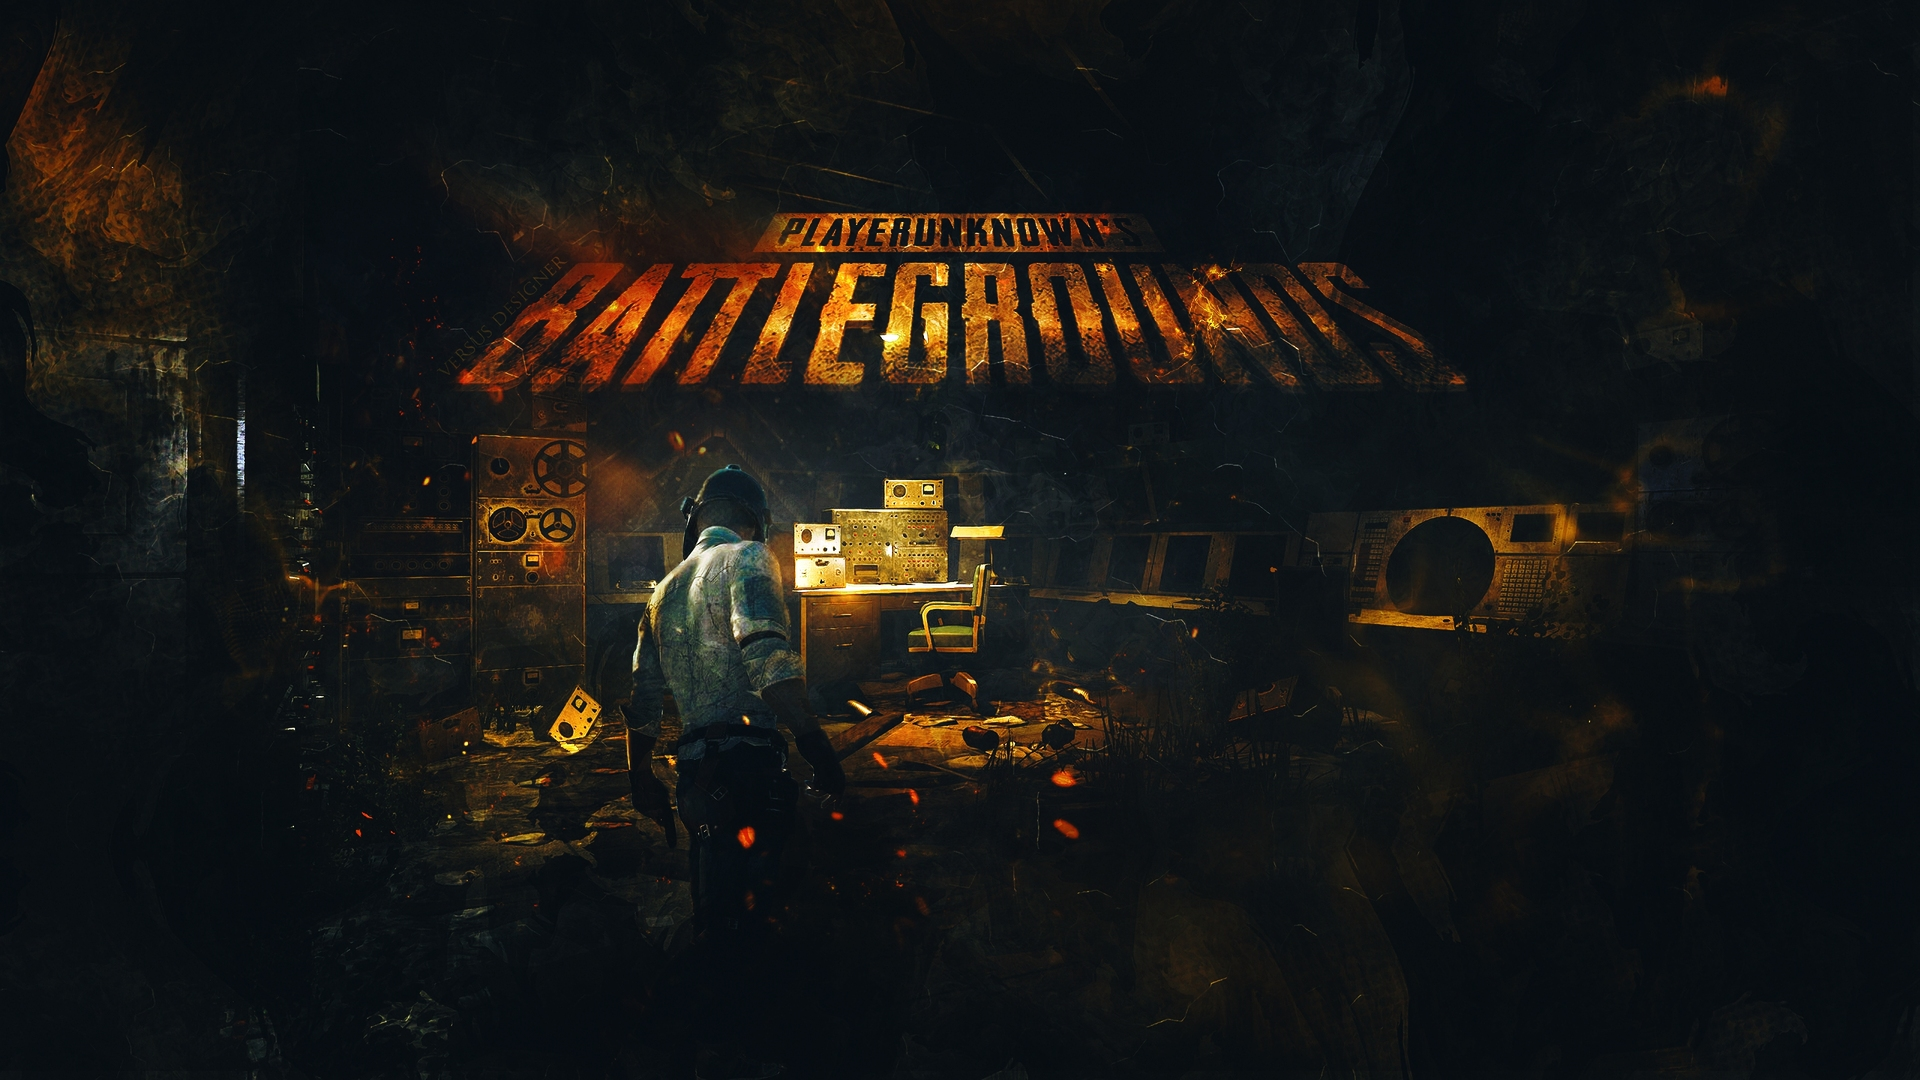 Pubg Wallpapers Hd 1080p: 1920x1080 Playerunknowns Battlegrounds 4k Art Laptop Full